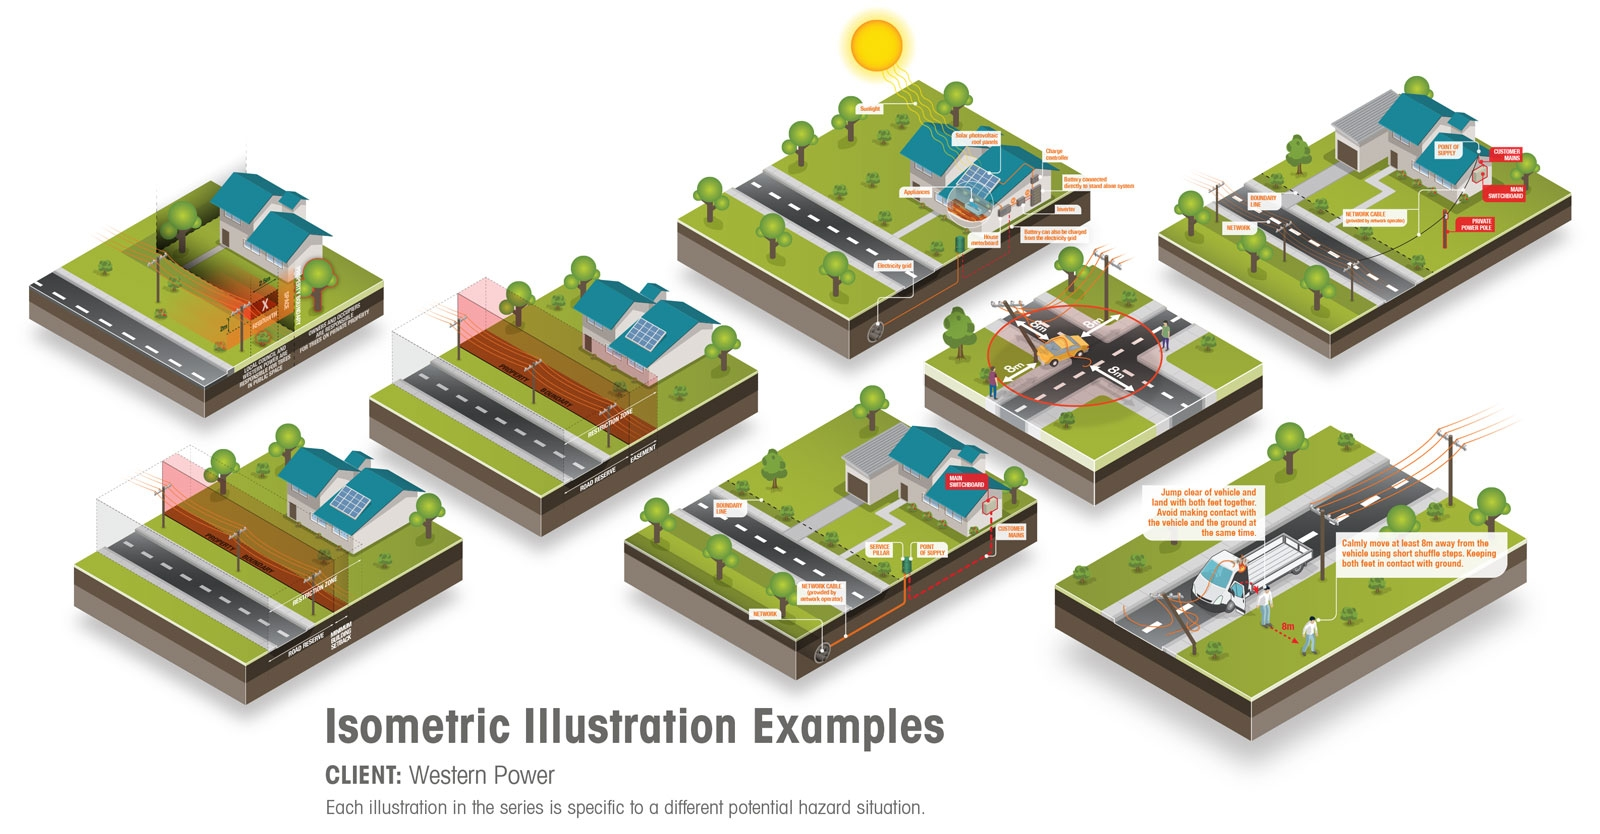 isometric illustration example